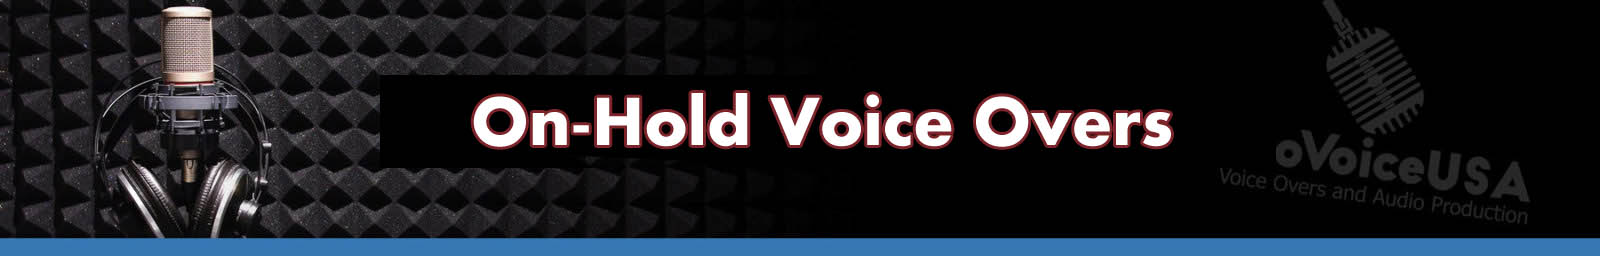 On Hold Voice Overs | Phone Greeting Recording Service | ProVoice USA